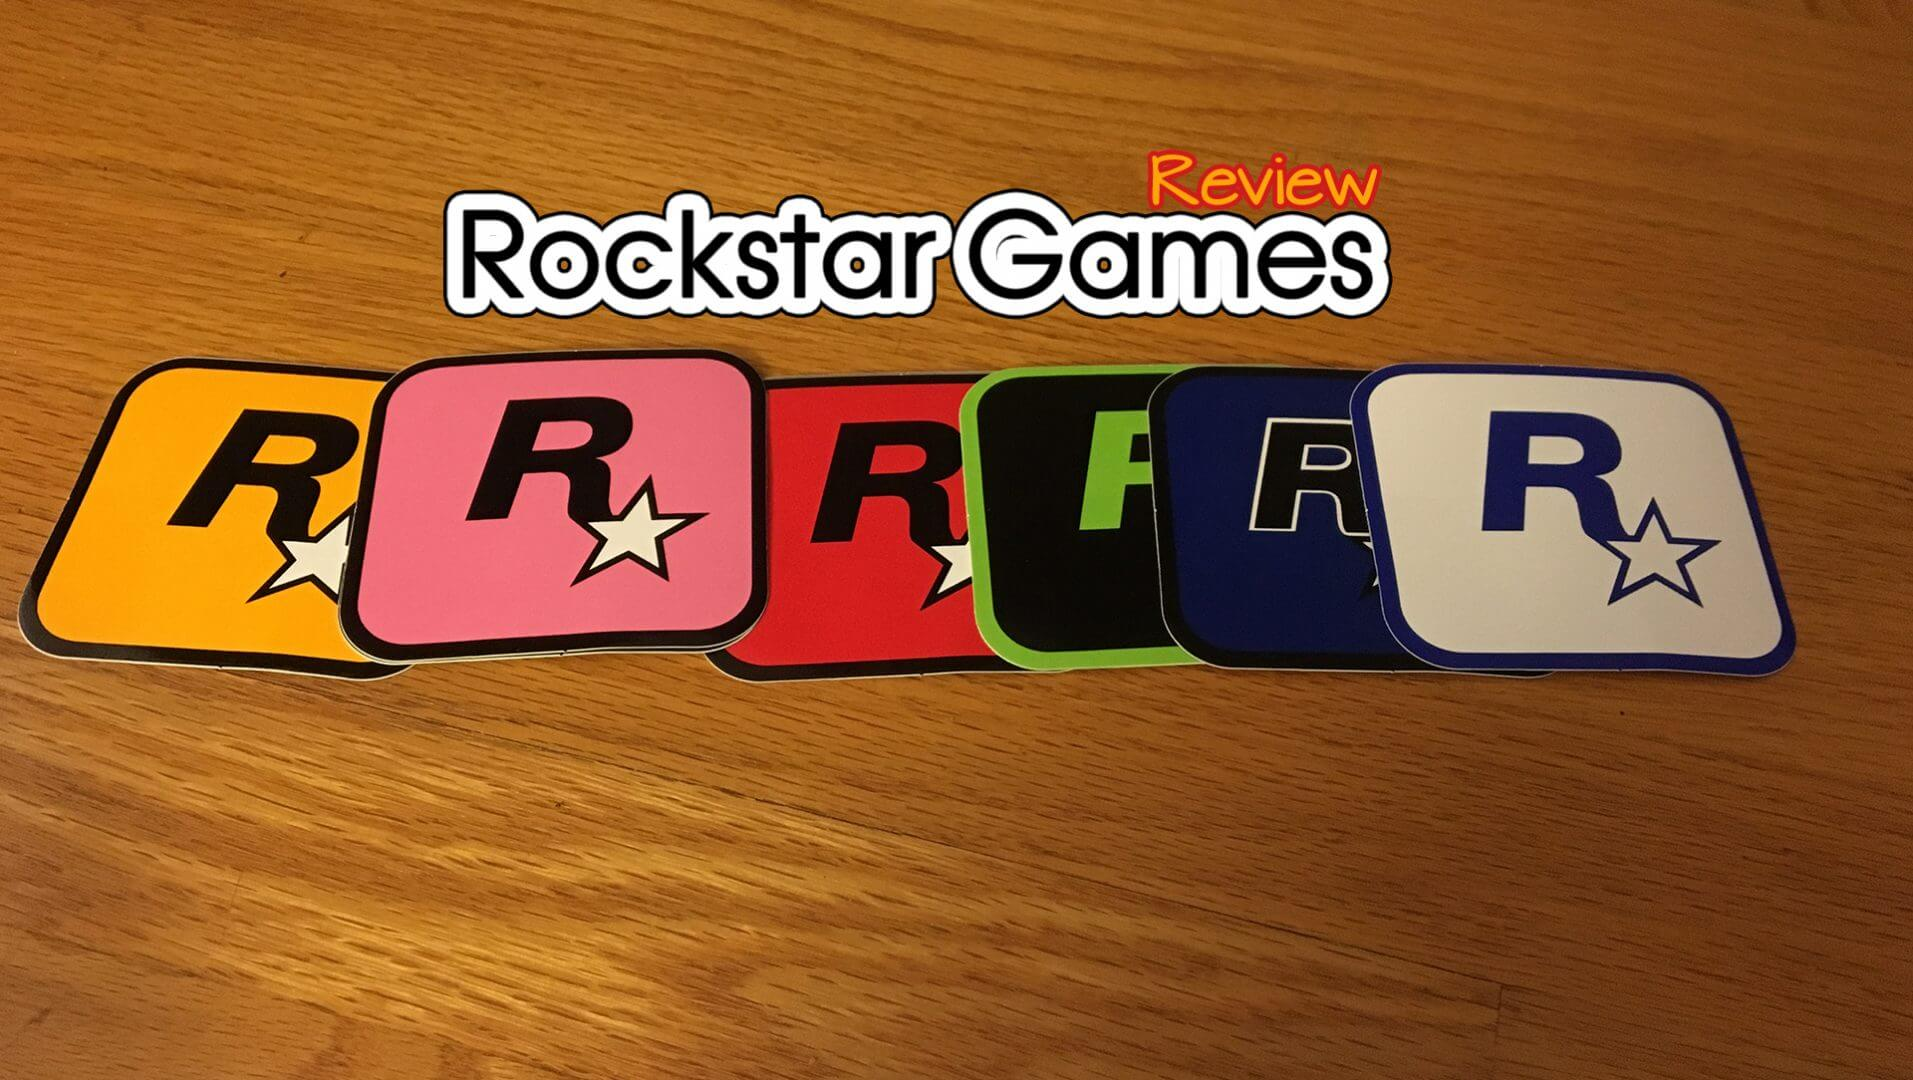 Rockstar Games Has Red Dead Redemption II Swag! - Review